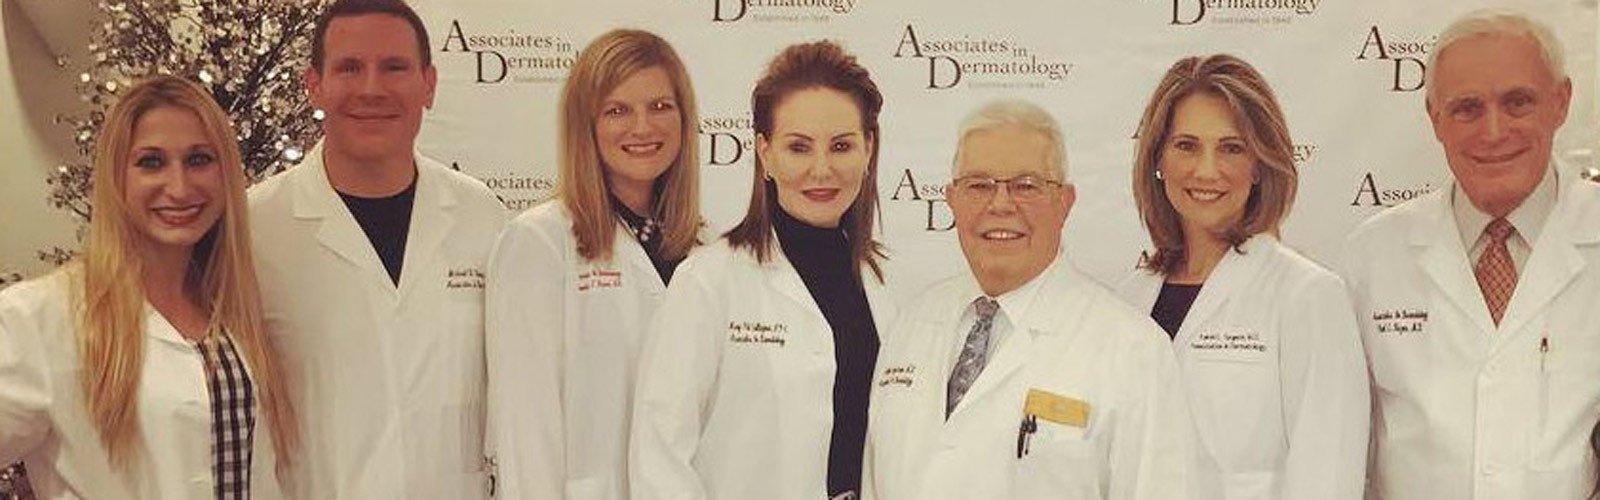 Associates In Dermatology - Team